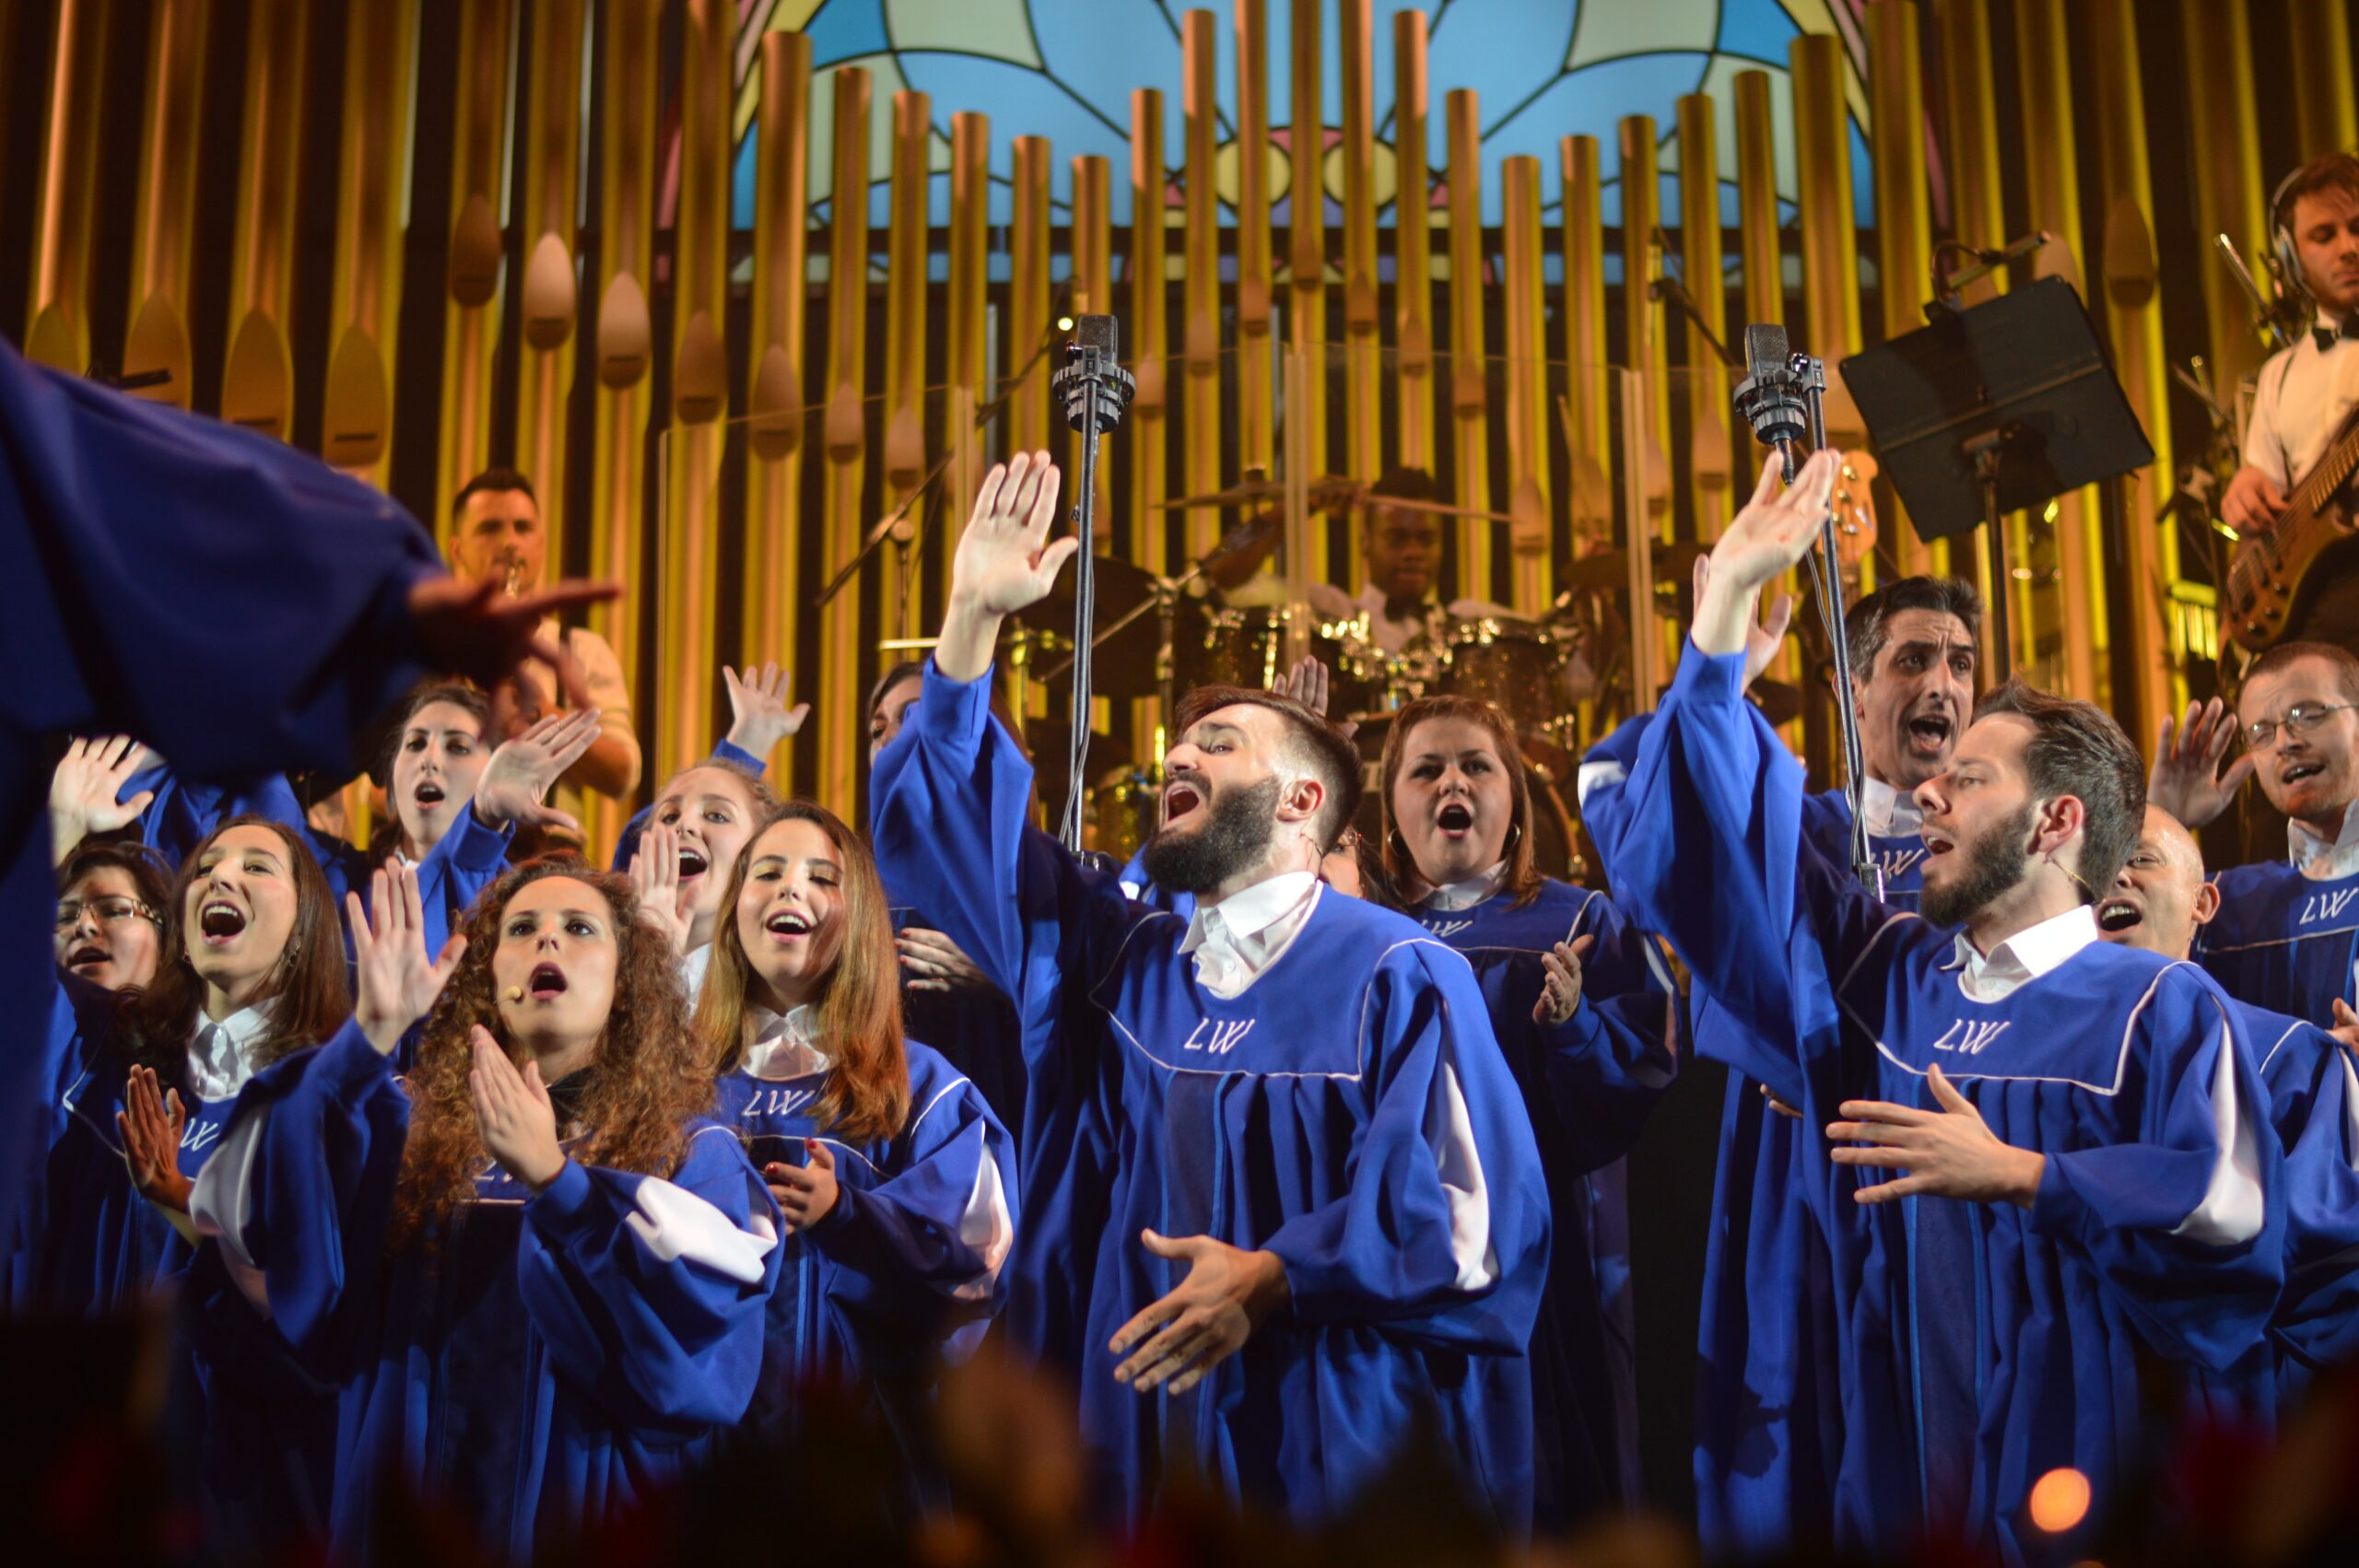 Self-Selected Choir vs Non-Auditioned Choir: 12 BIG DIFFERENCES!